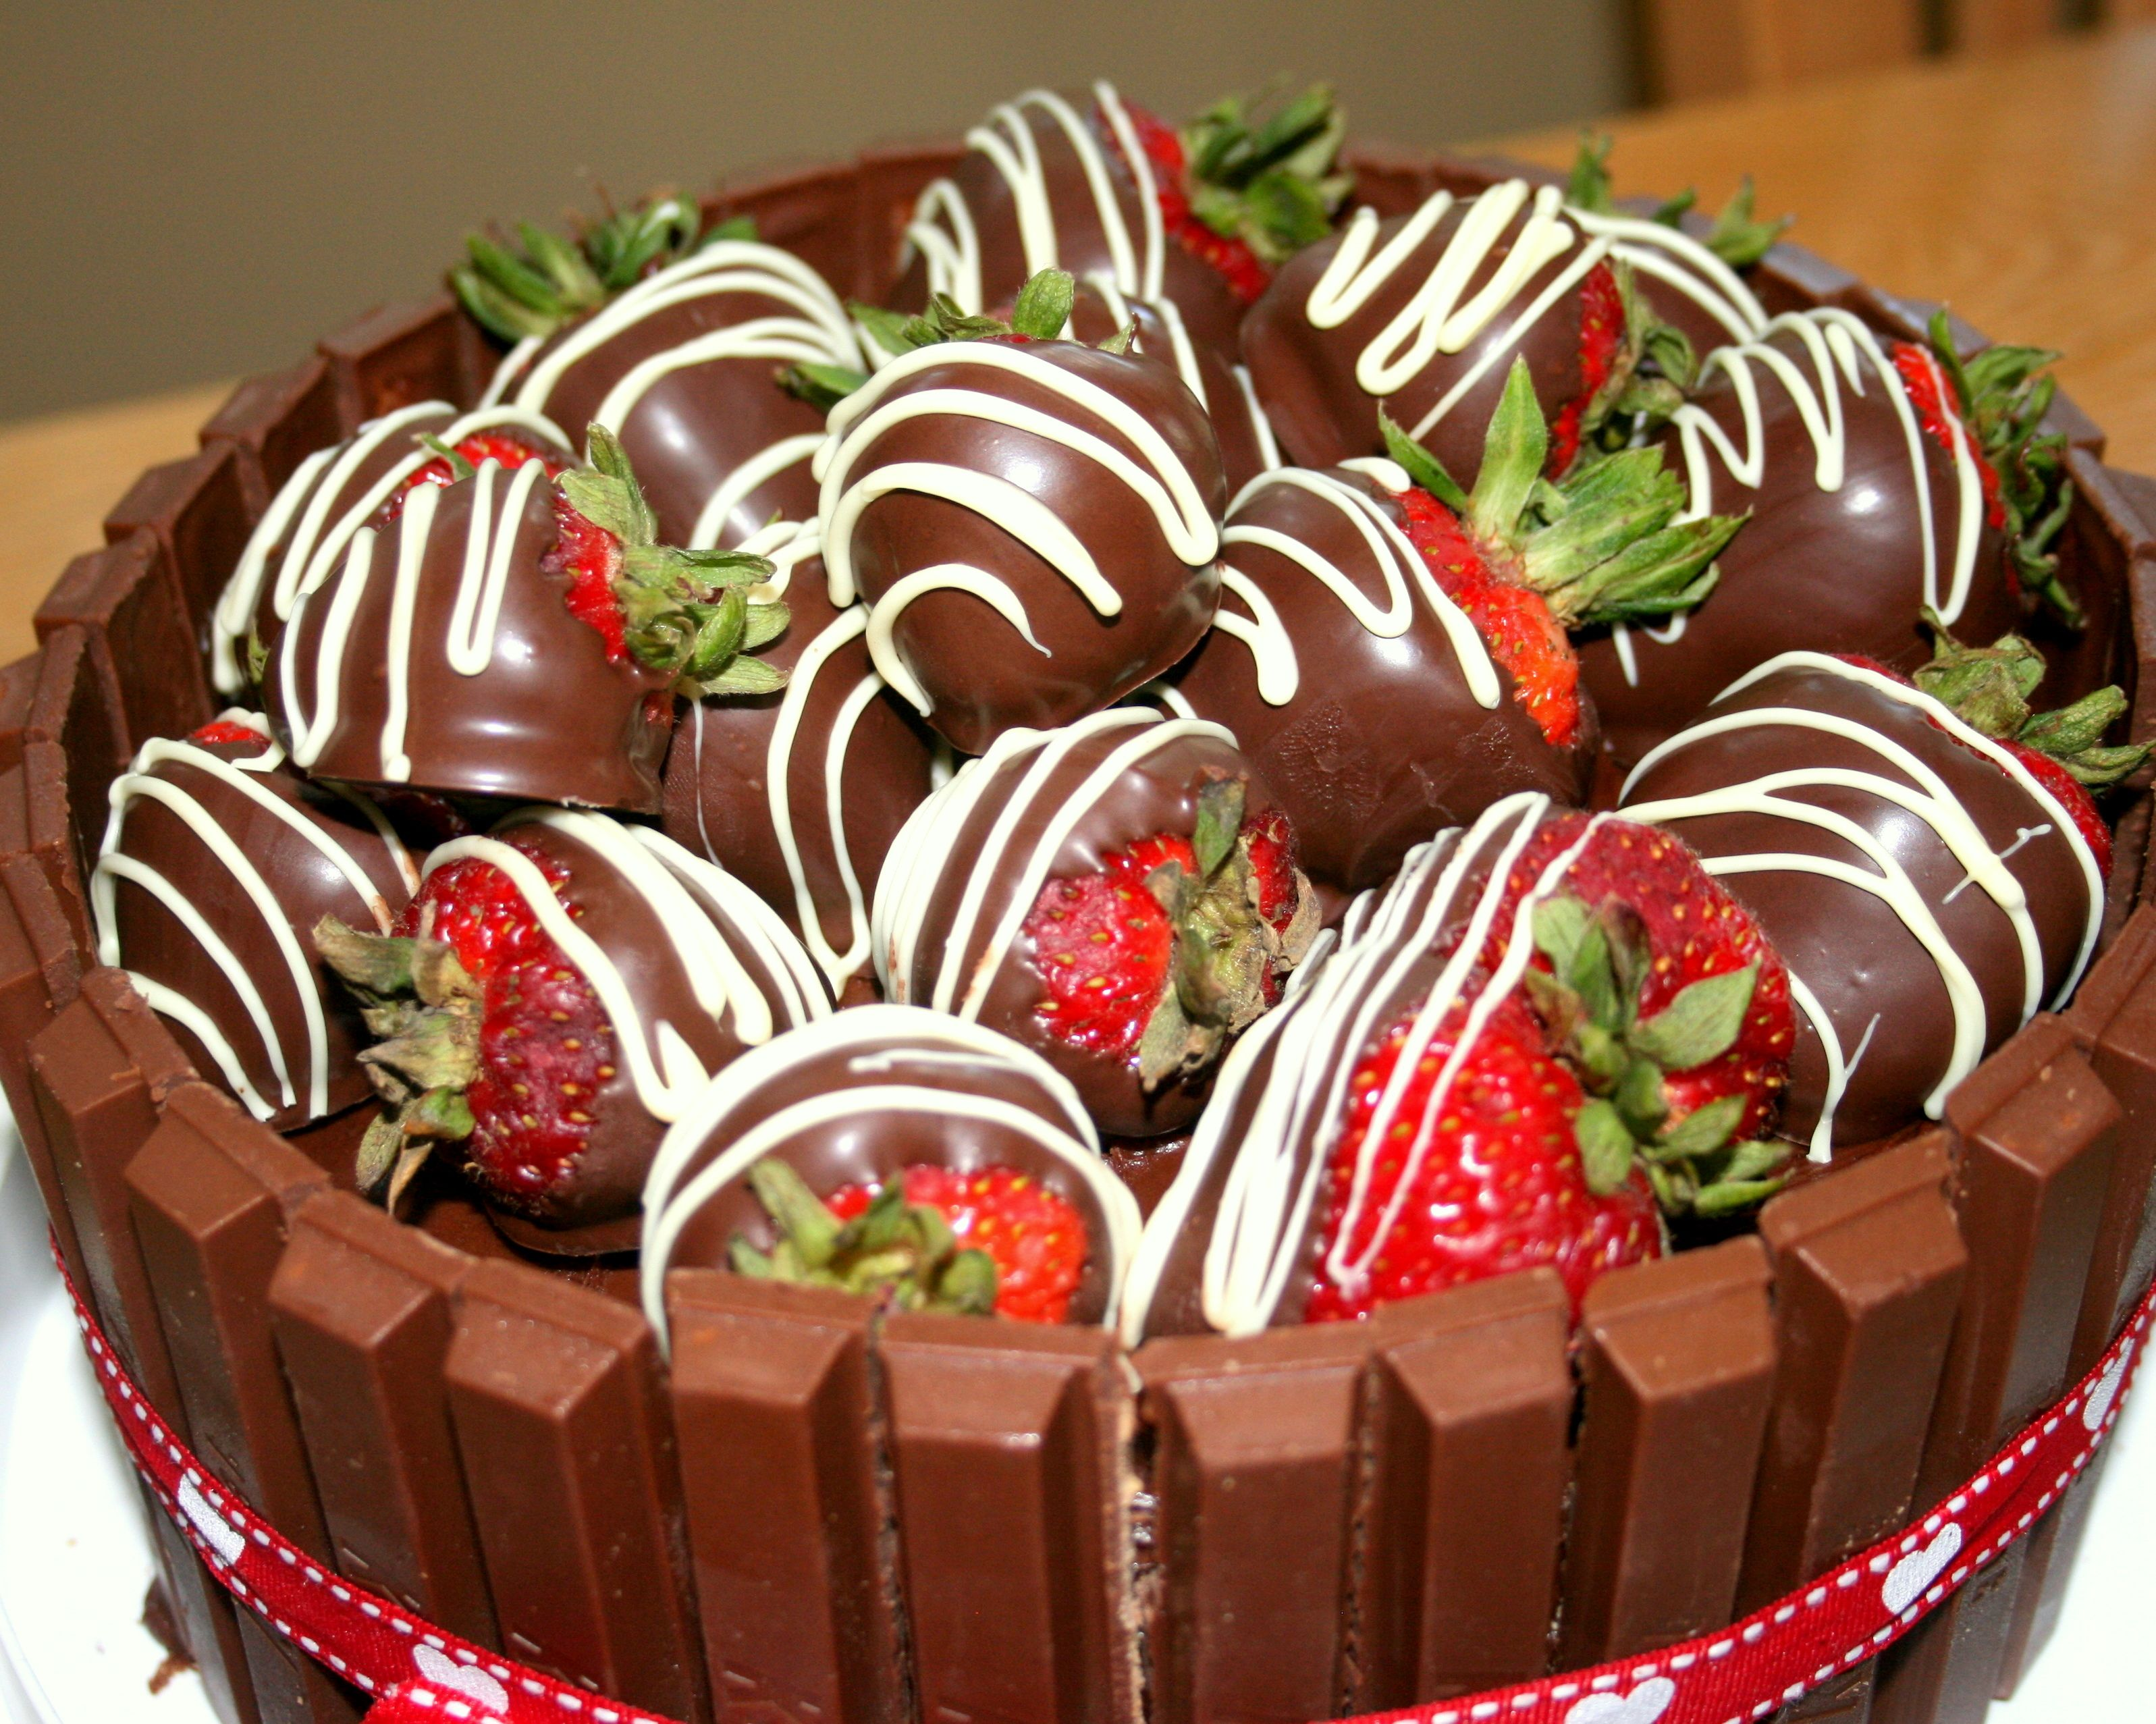 candy strawberry cakes chocolate covered strawberries chocolate cakes ...